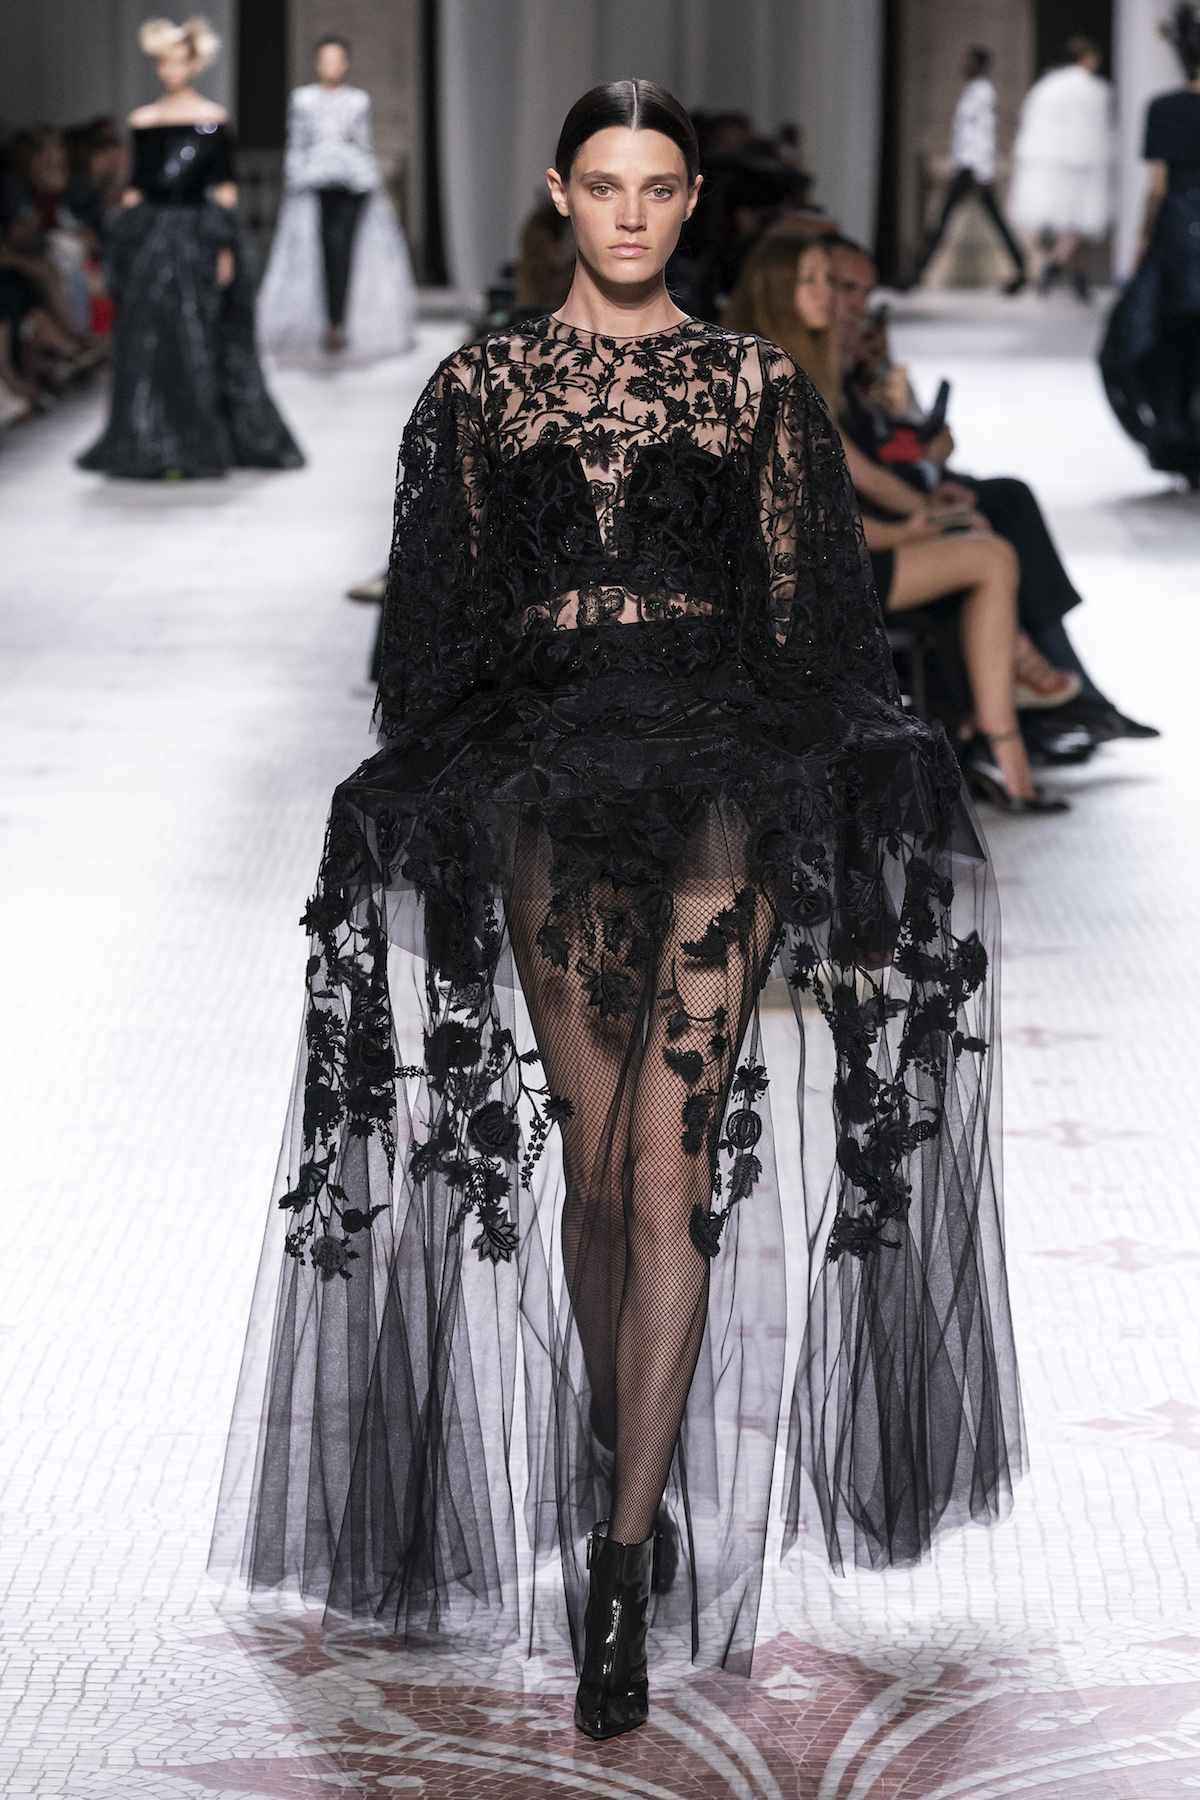 Givenchy Haute Couture Fall Winter 2019 (Look 35).jpg